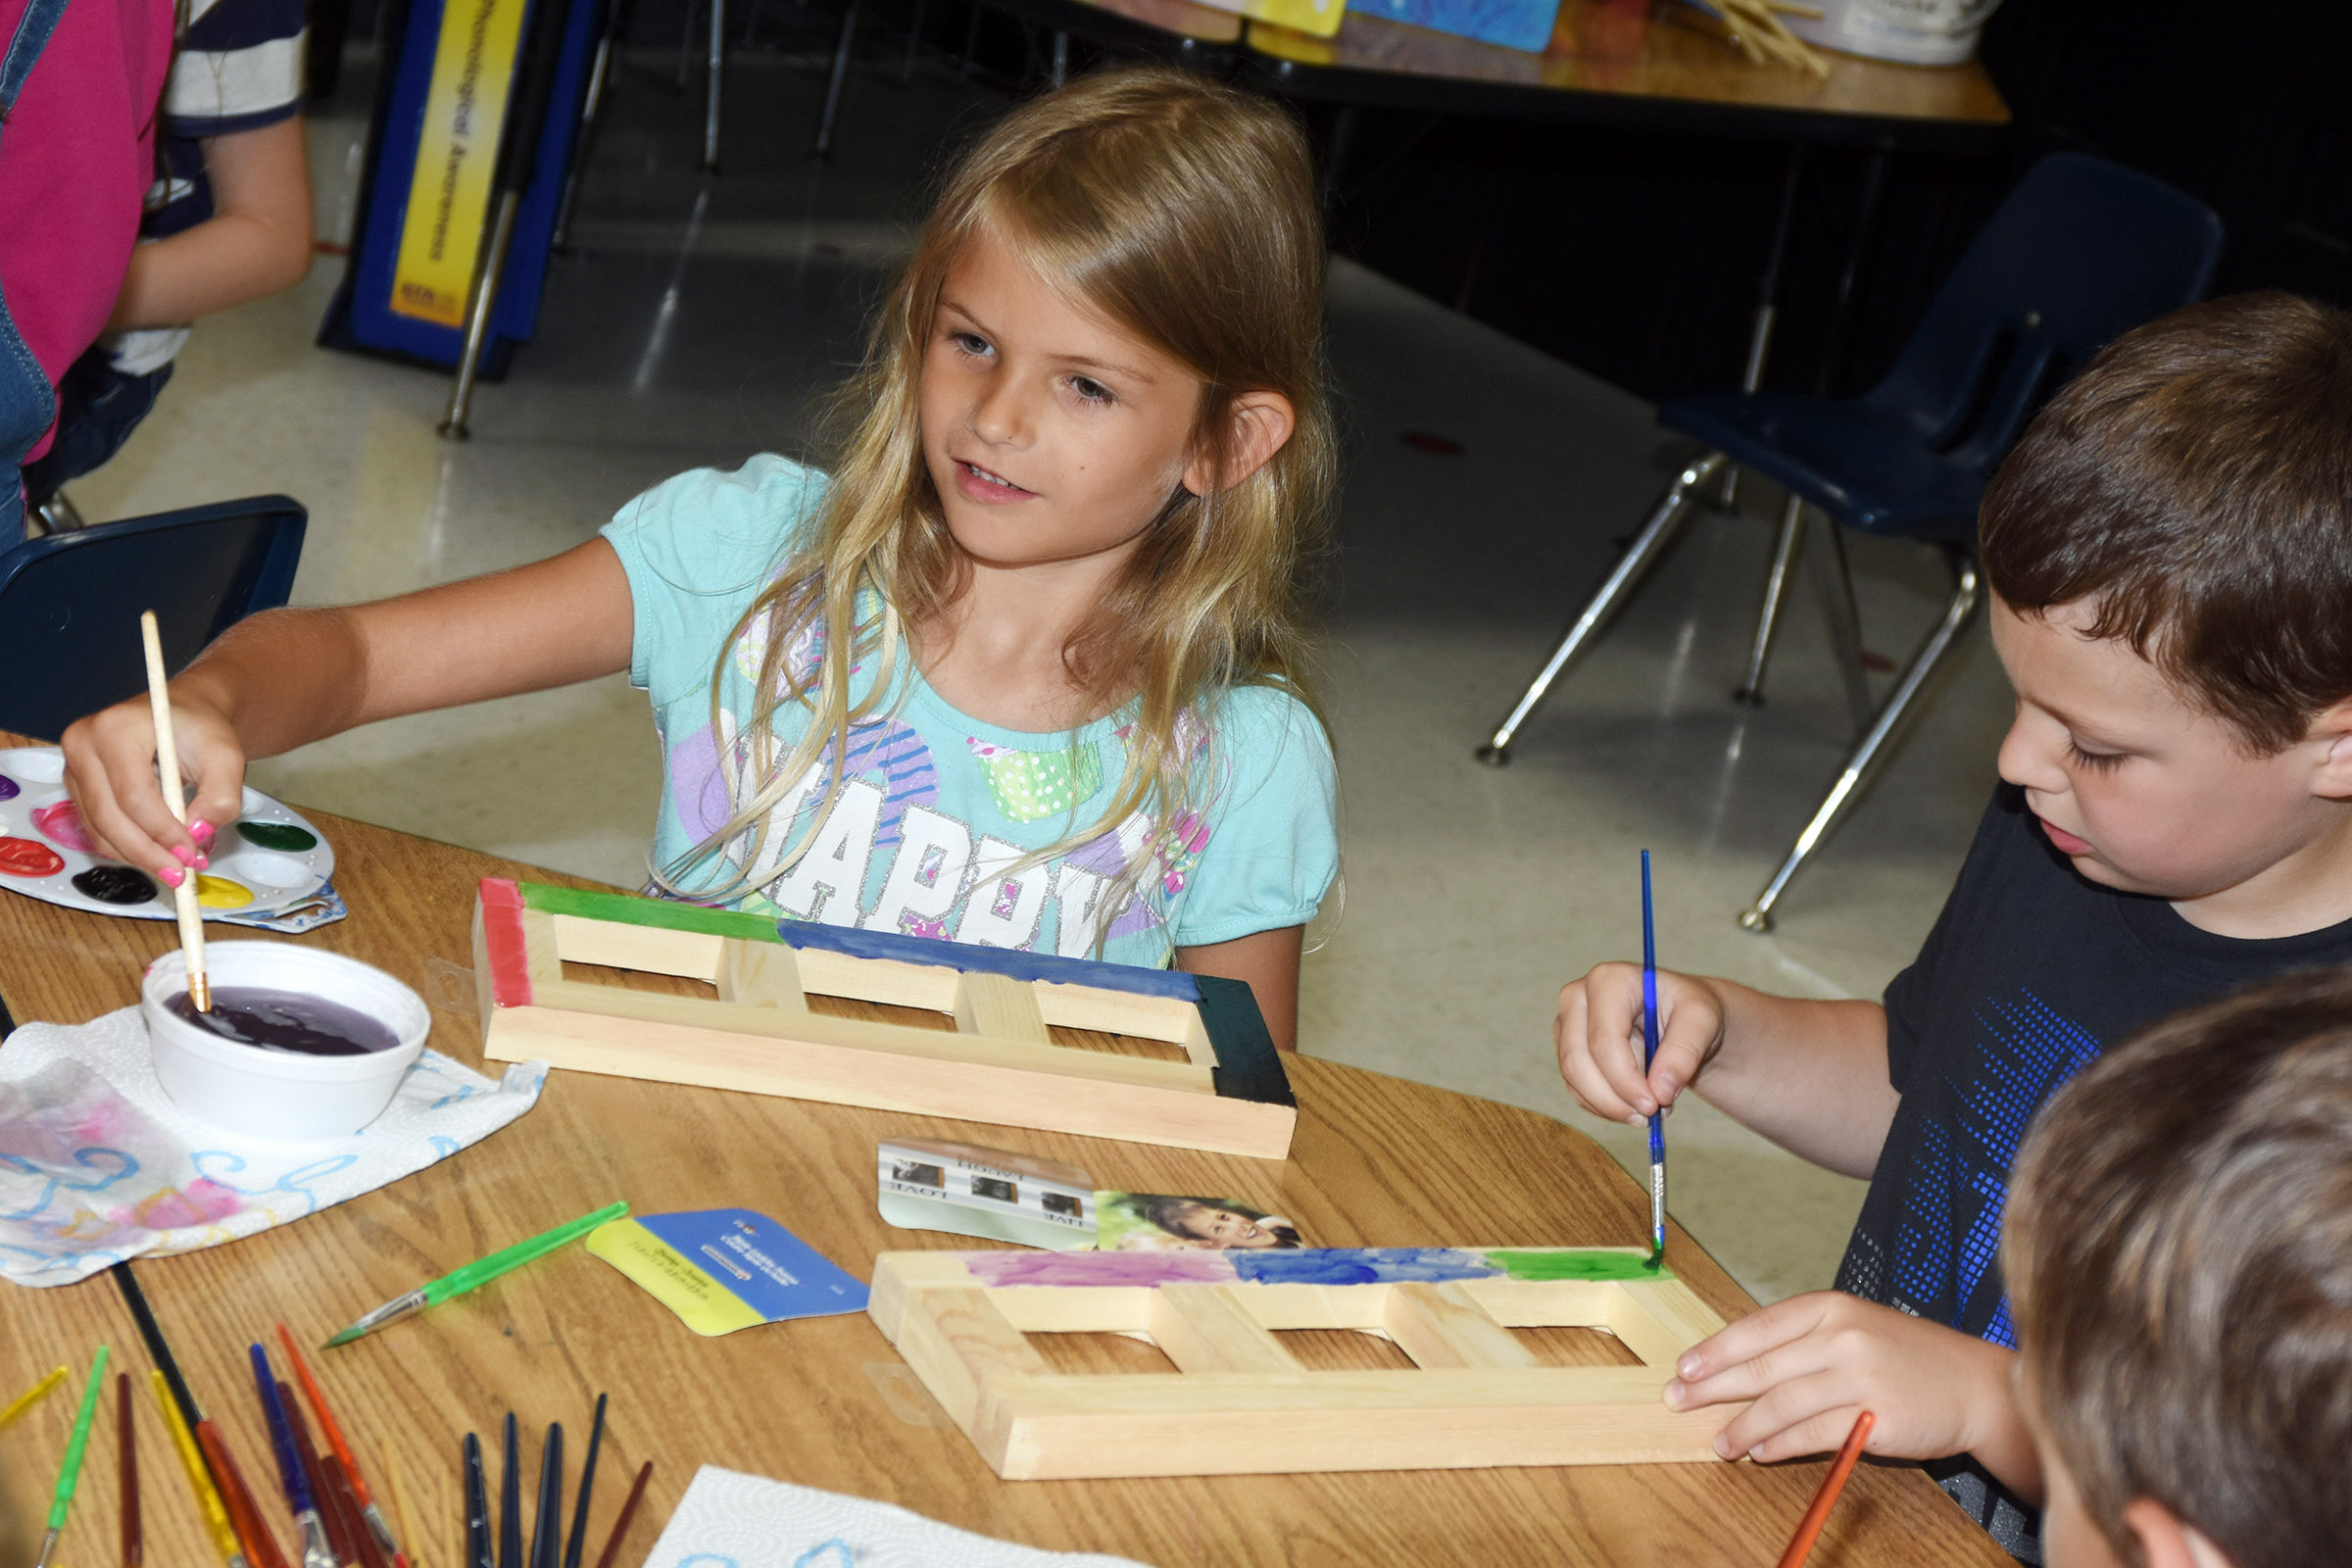 CES first-grader Gracie Gebler paints a picture frame with her classmates.